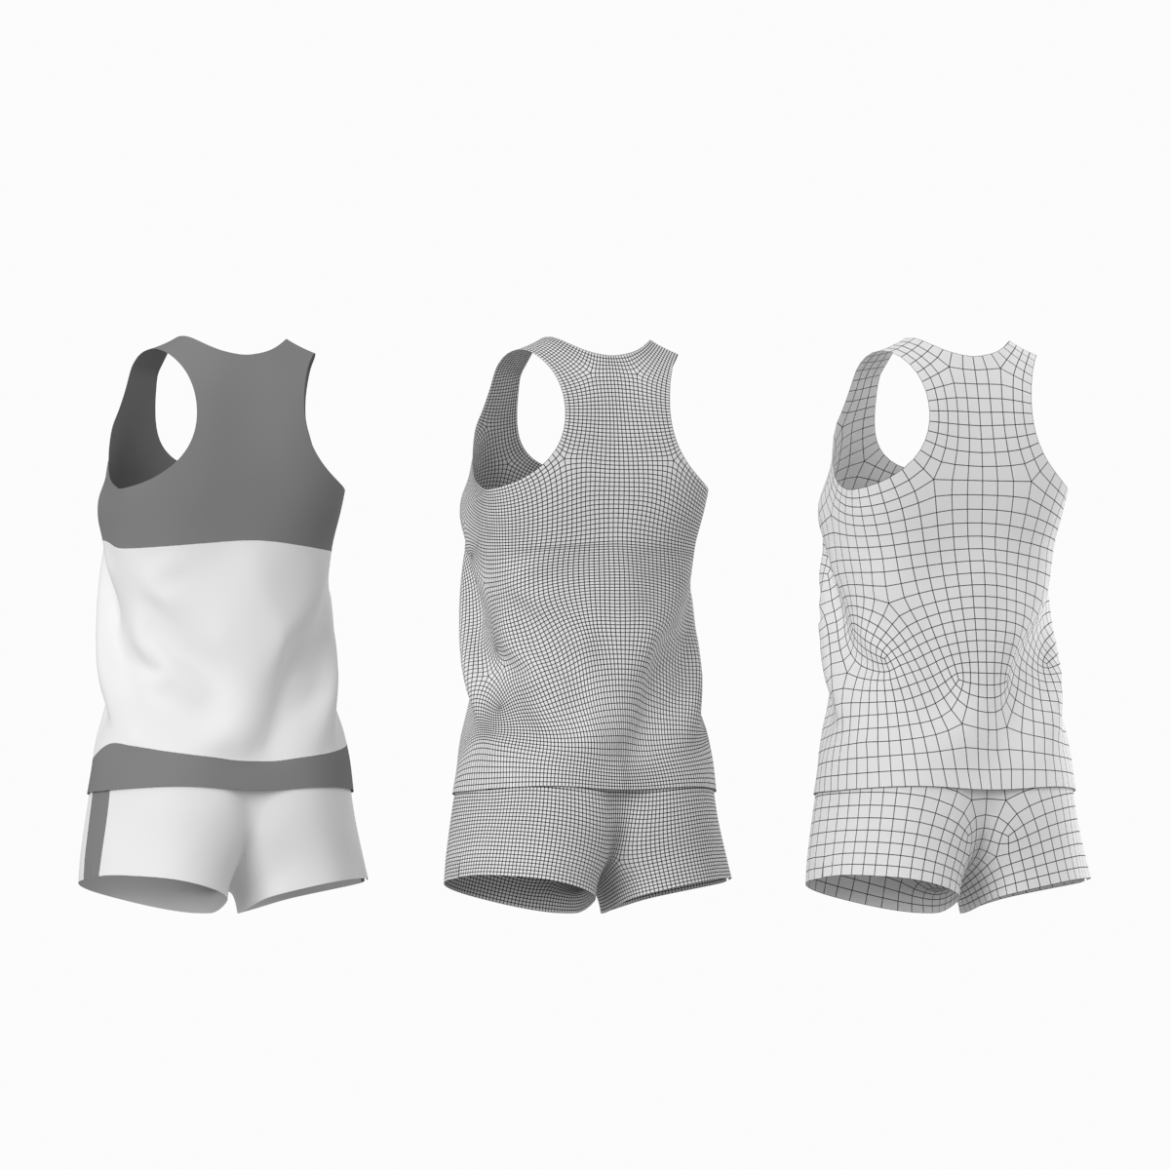 woman sportswear 03 base mesh design kit 3d model 3ds max fbx blend c4d dae ma mb  obj ztl 321874